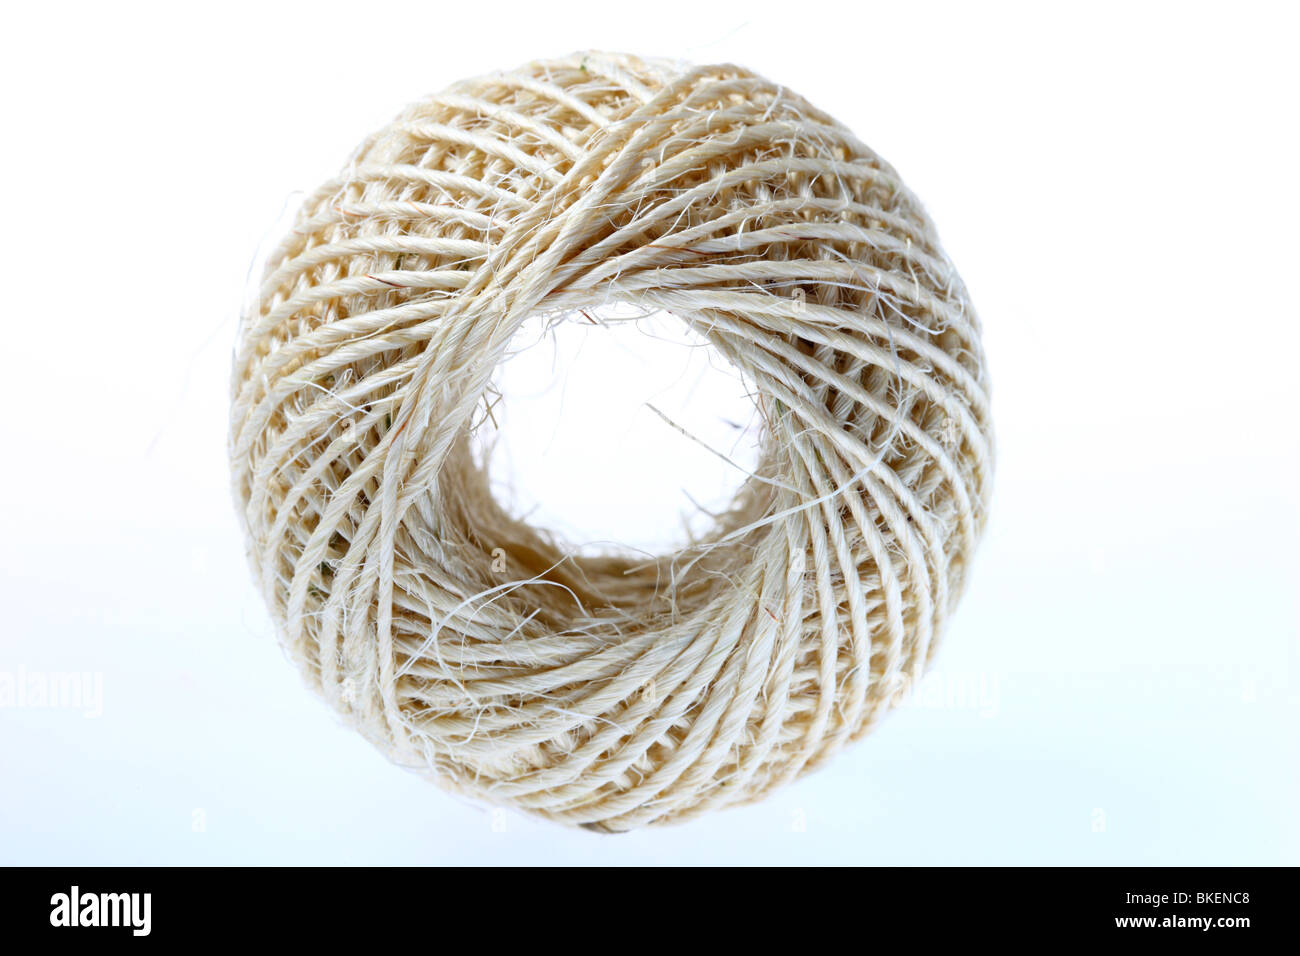 package cord, coiled to a role. Germany, Europe. - Stock Image